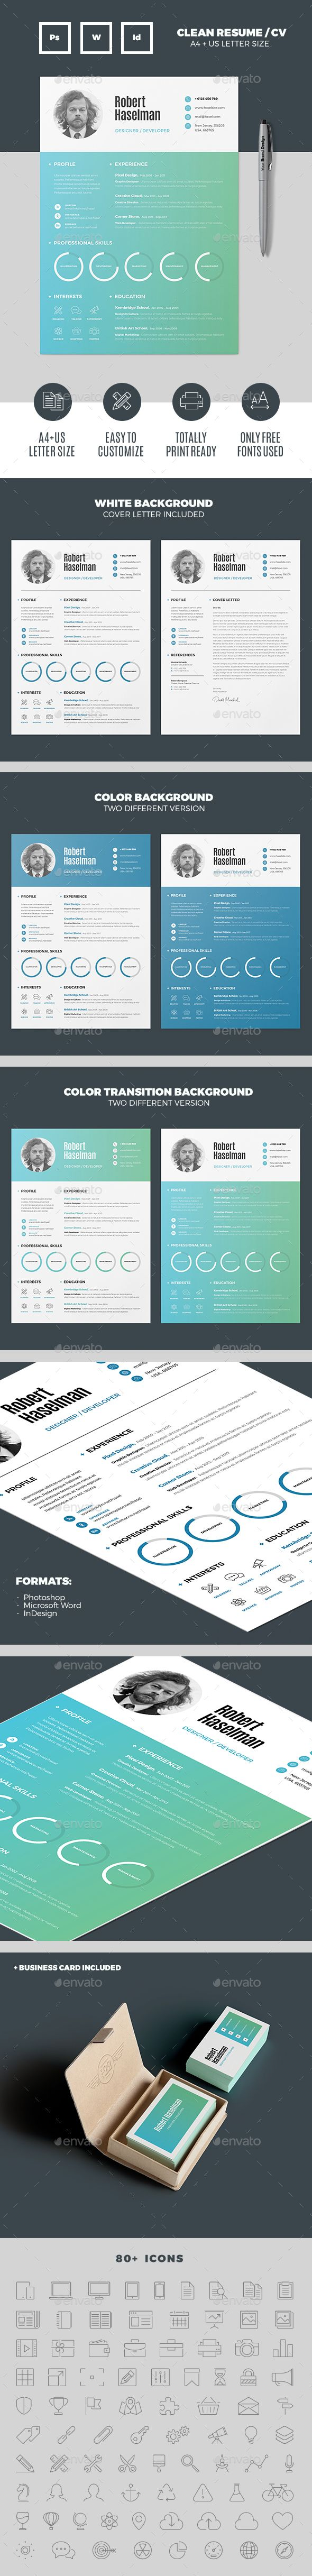 Photographers Resume  Best Images About Resume On Pinterest  Template Creative  Resume Wording with Digital Resume Word Resume Professional Resume Outline Word